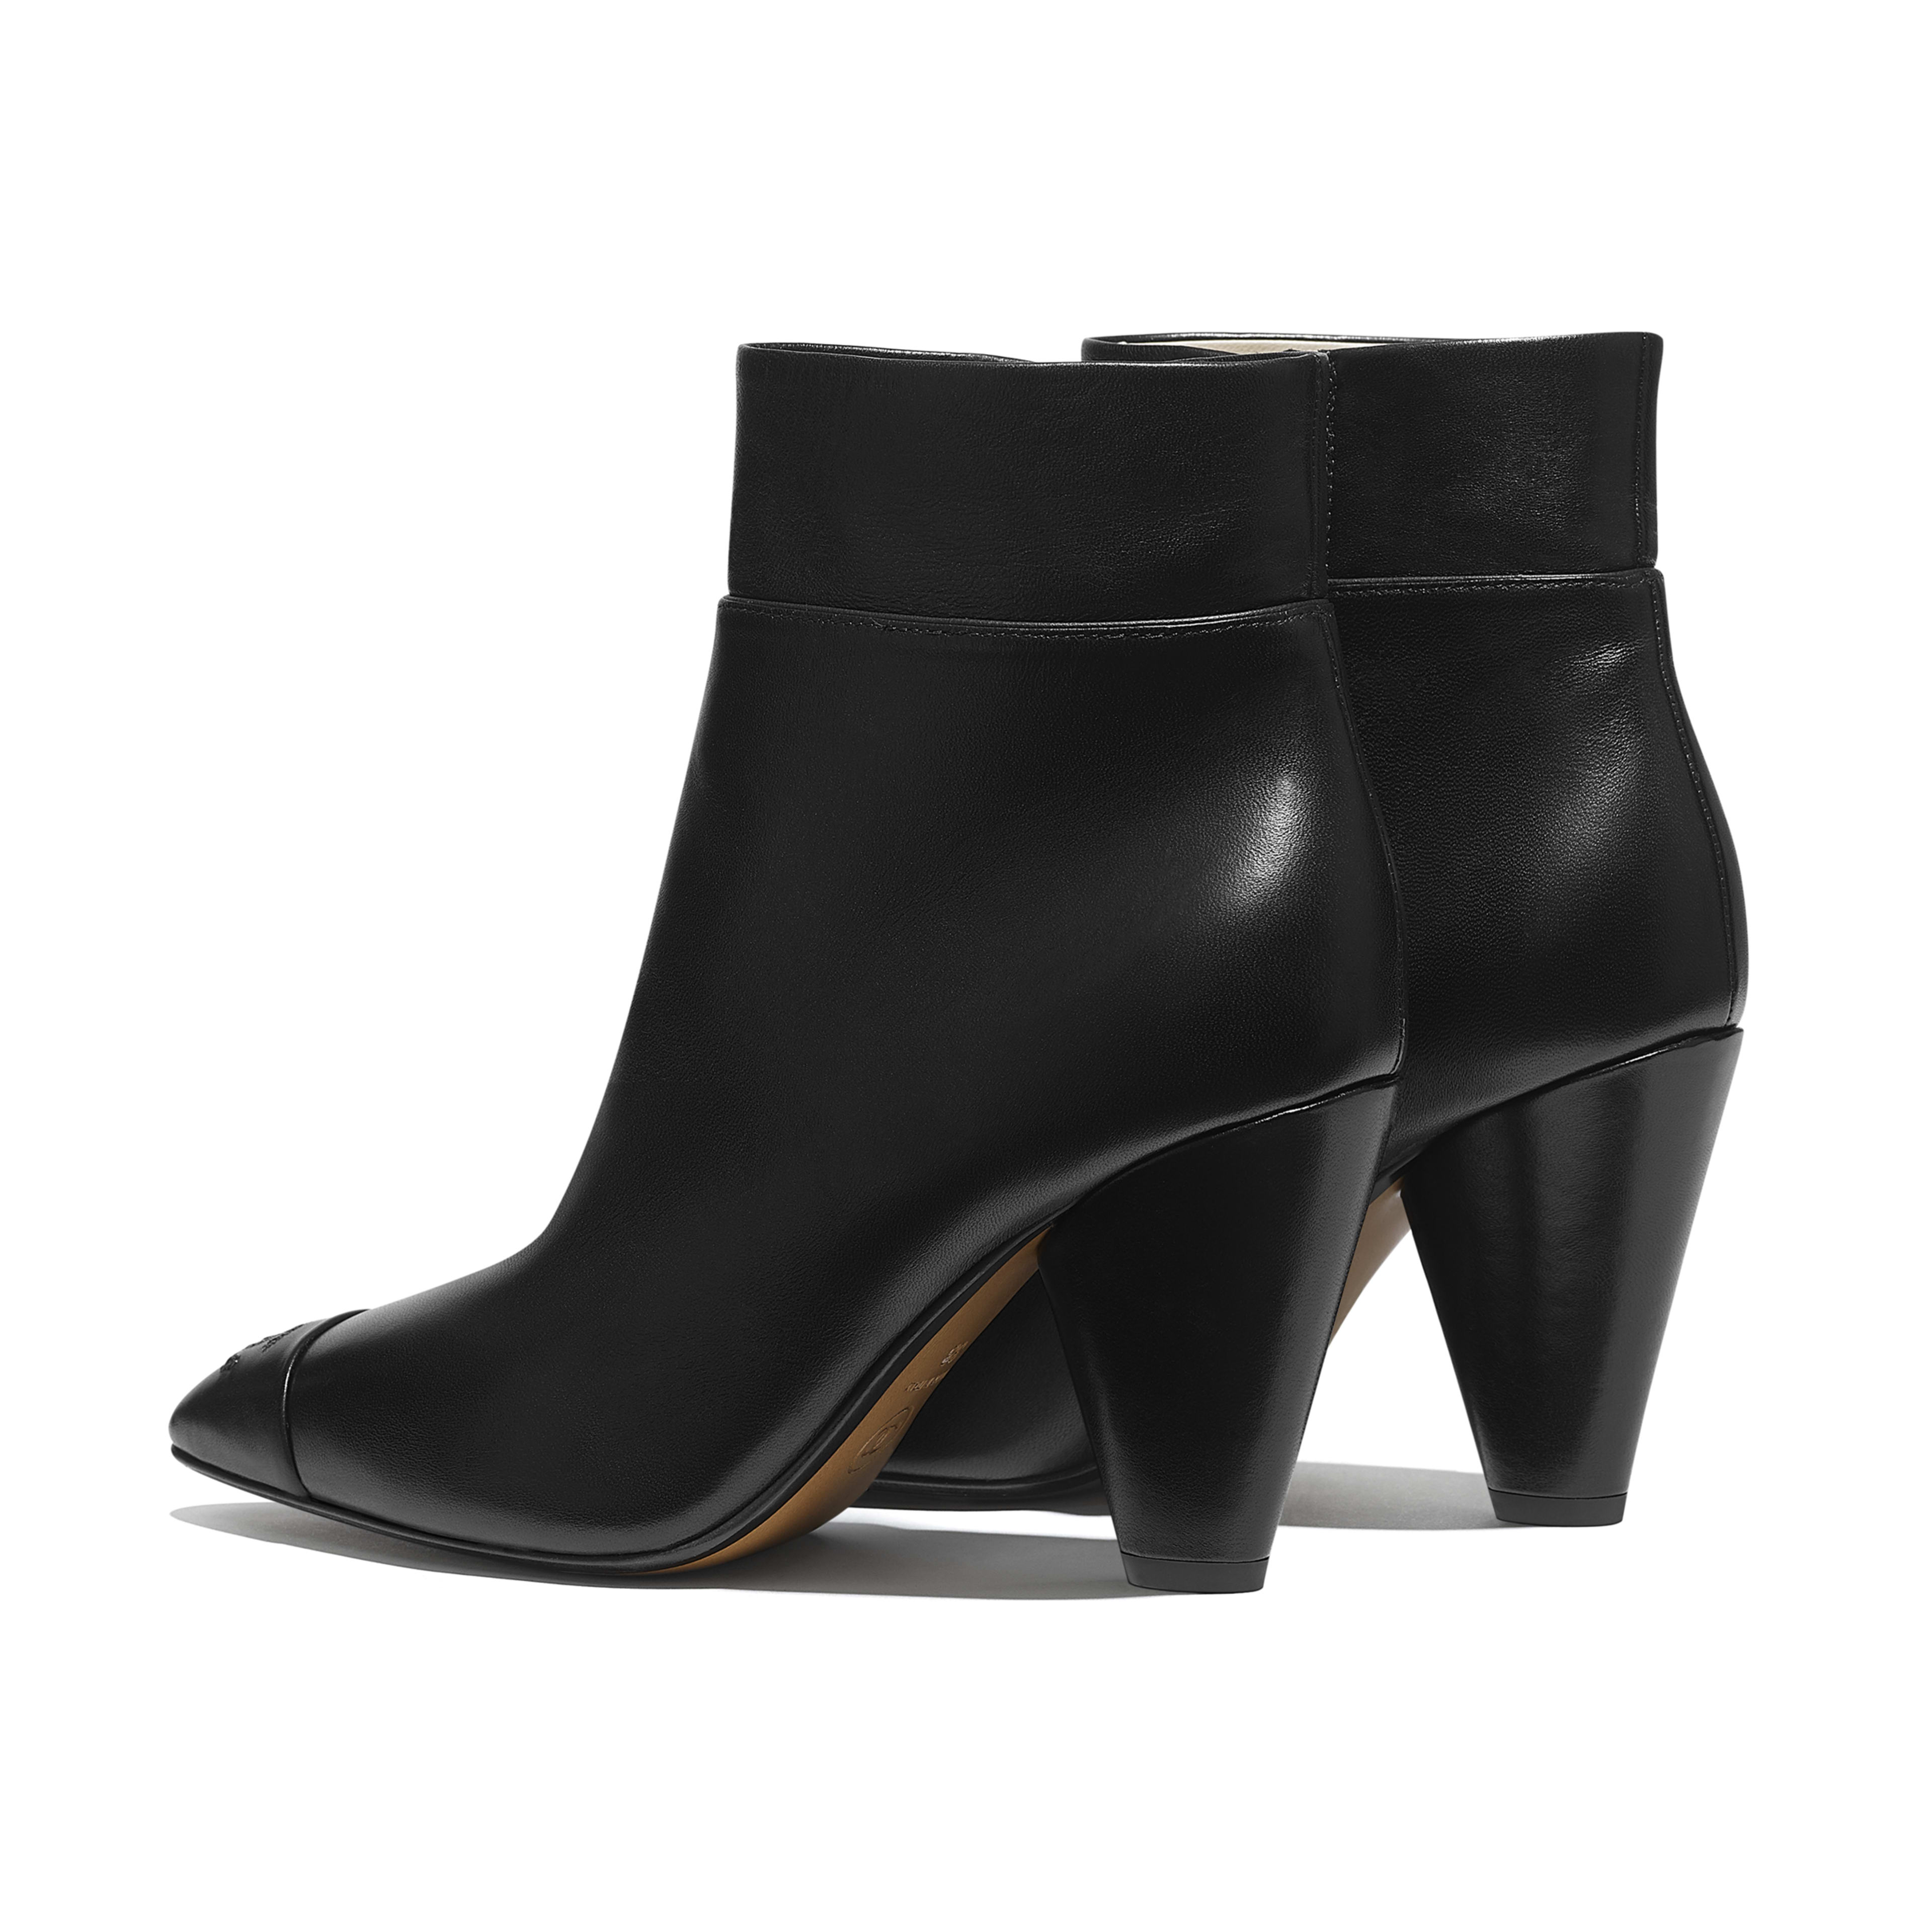 Ankle Boots - Black - Lambskin - Other view - see full sized version